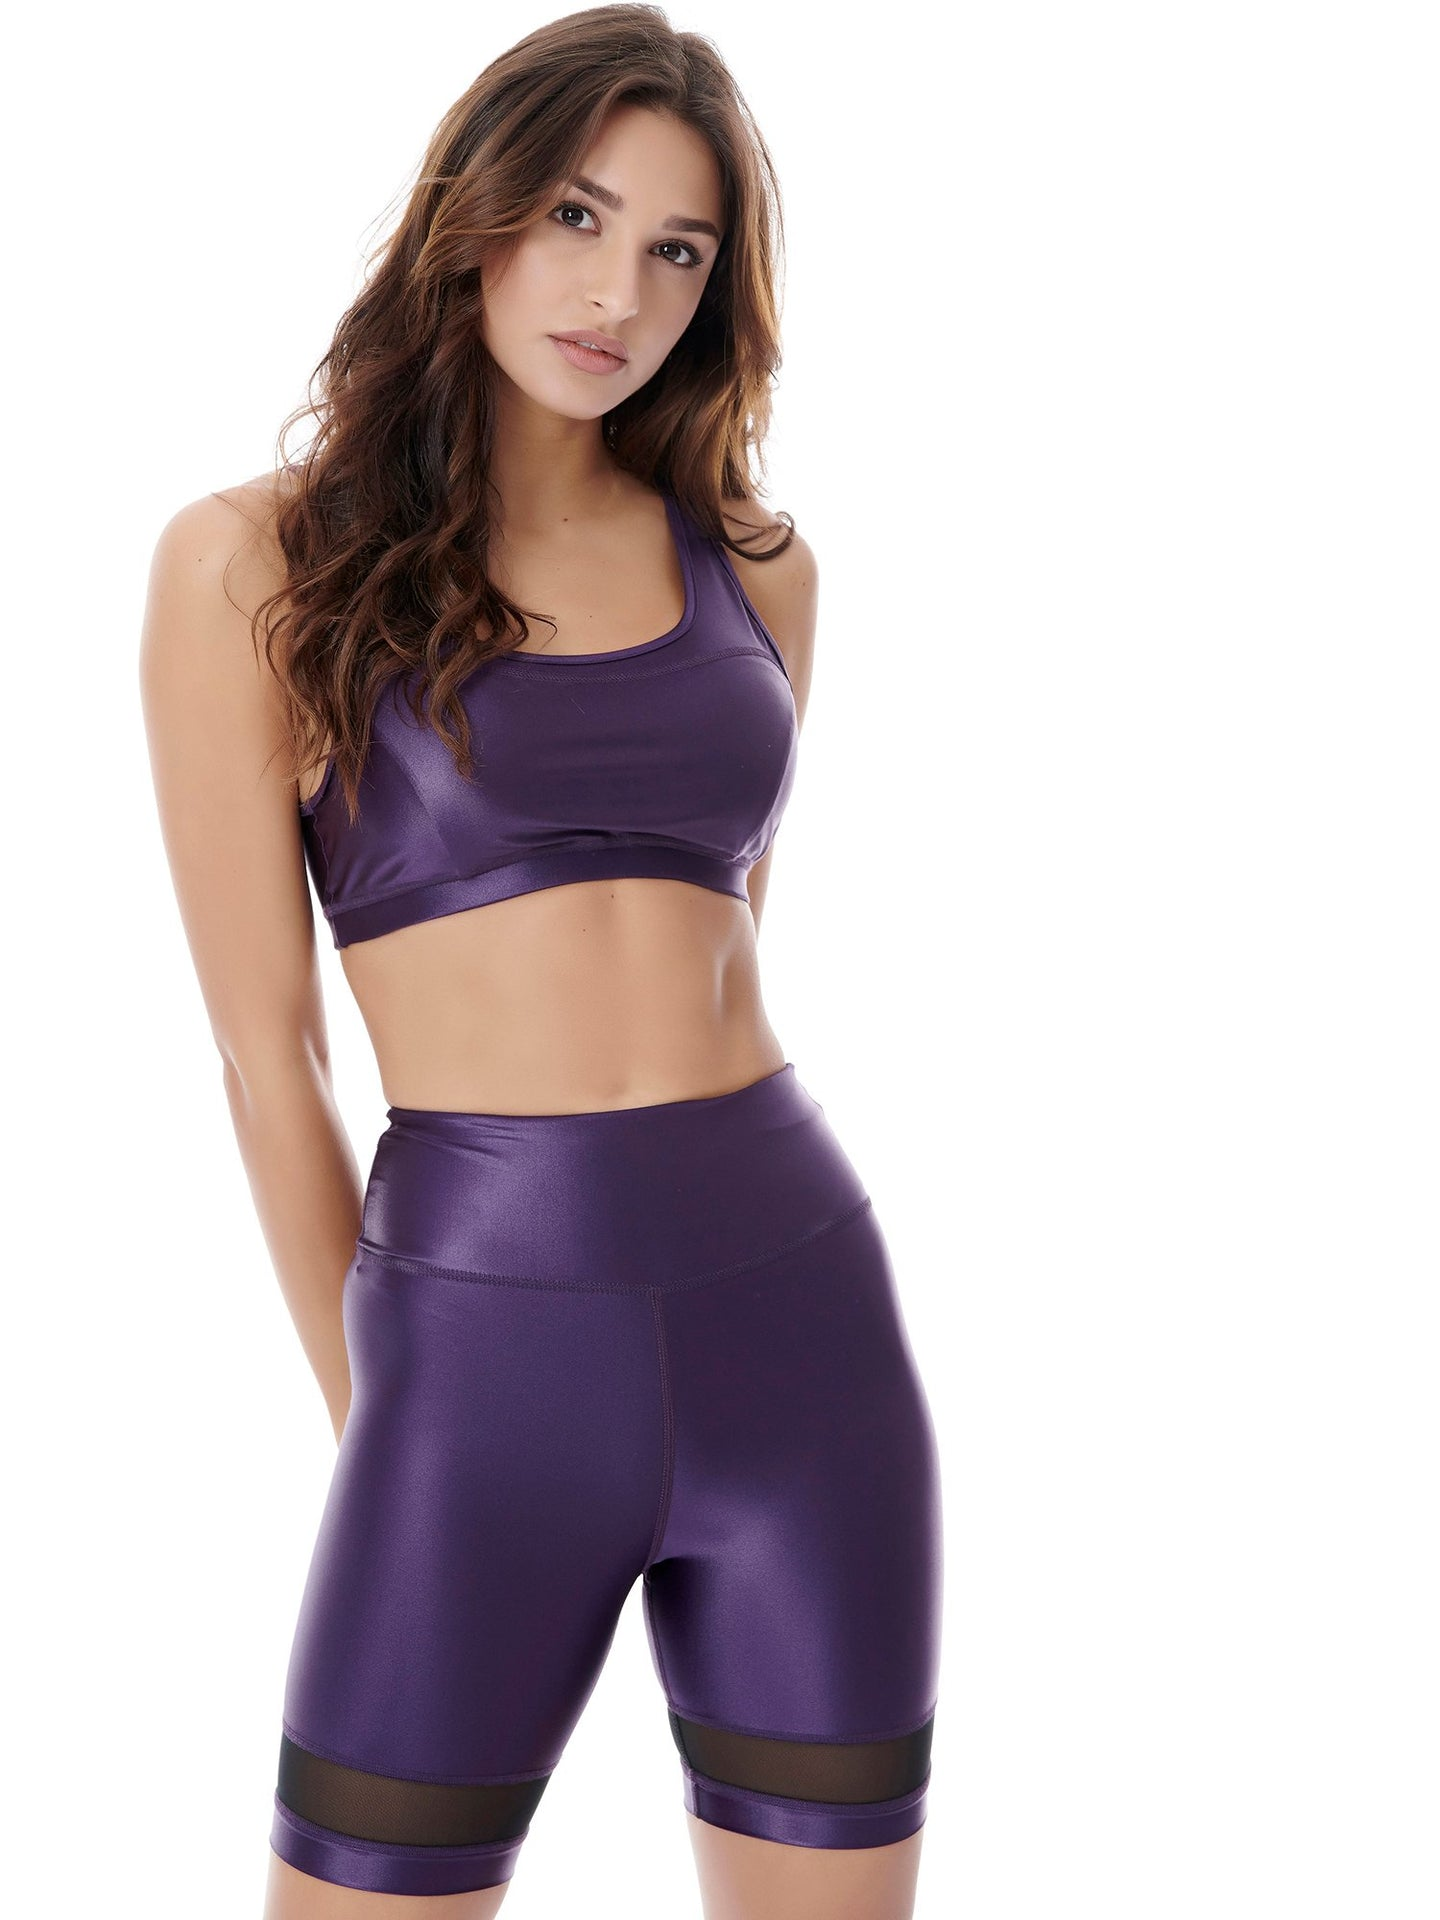 DAZZLE BIKER SHORT WITH MESH DETAIL - PURPLE